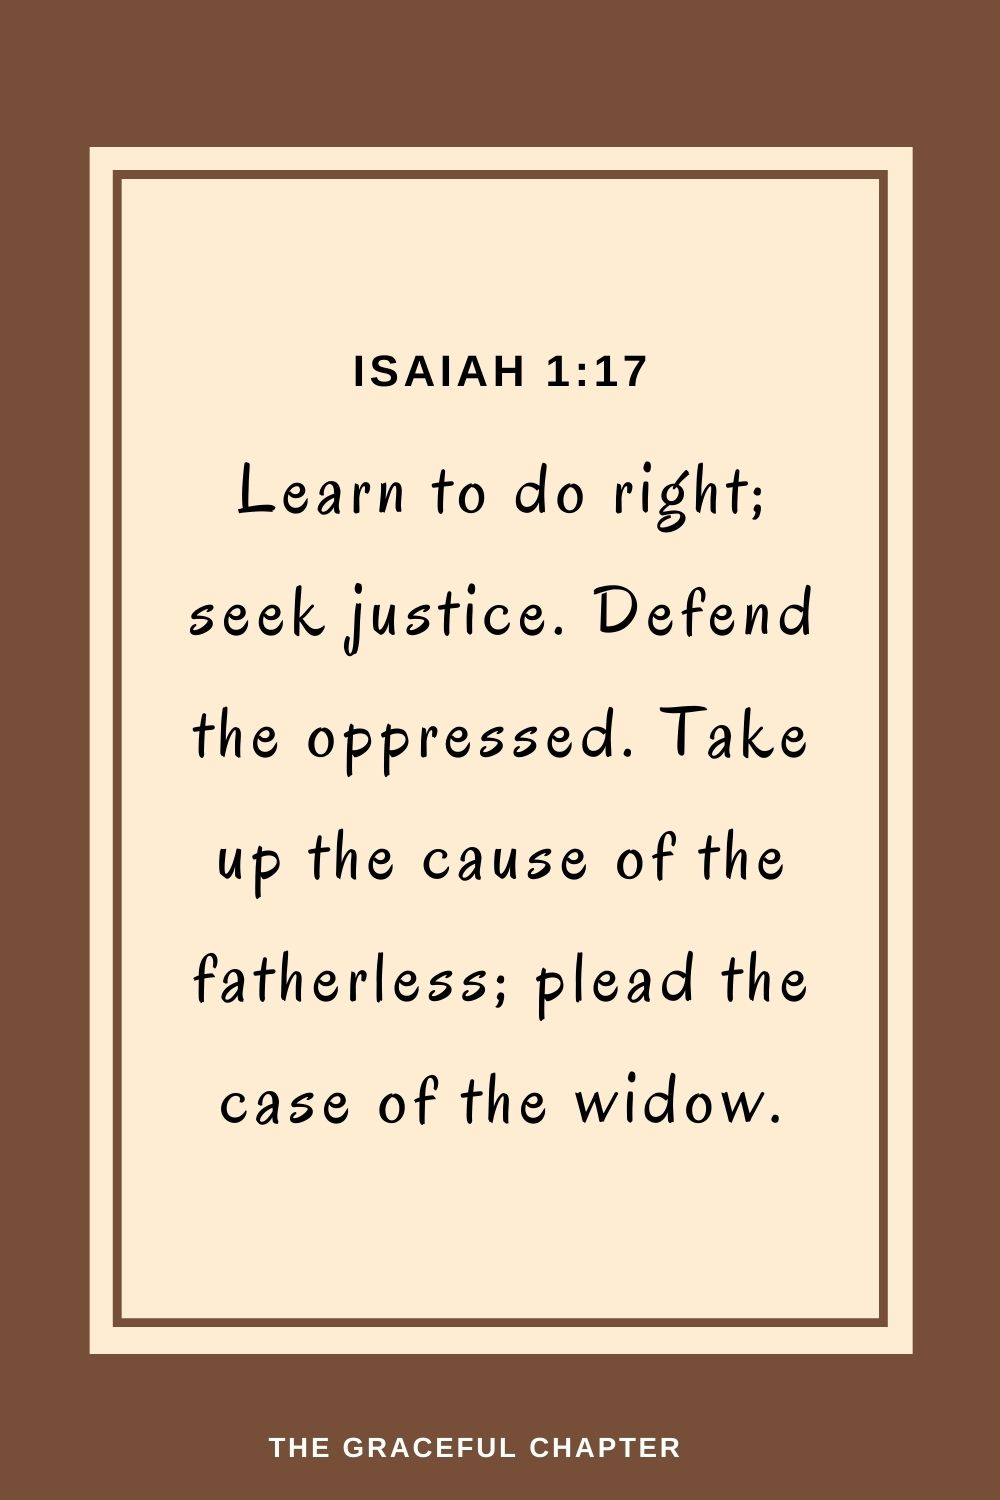 Learn to do right;seek justice. Defend the oppressed. Take up the cause of the fatherless; plead the case of the widow. Isaiah 1:17